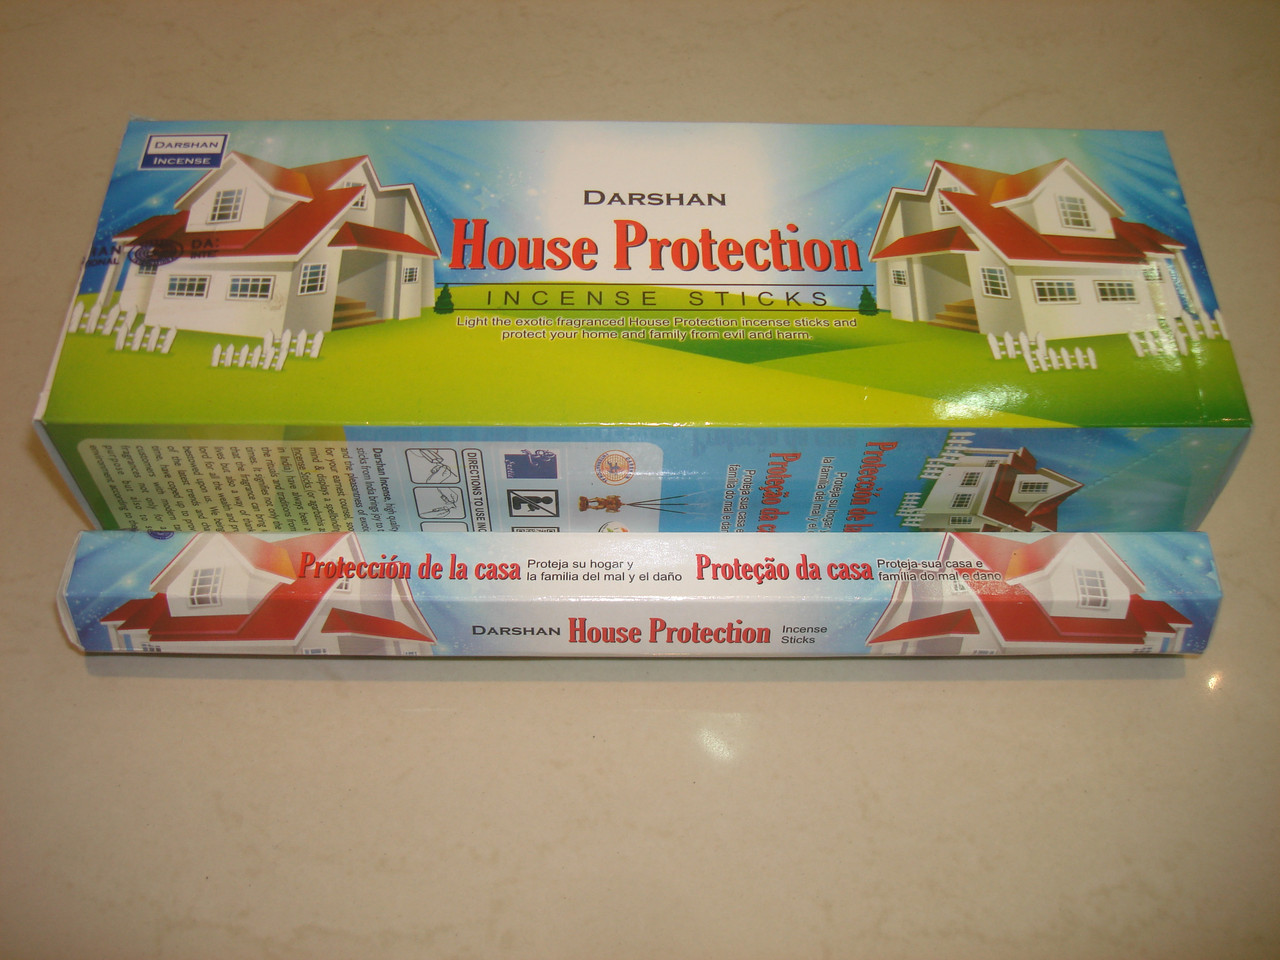 House Protection Darshan